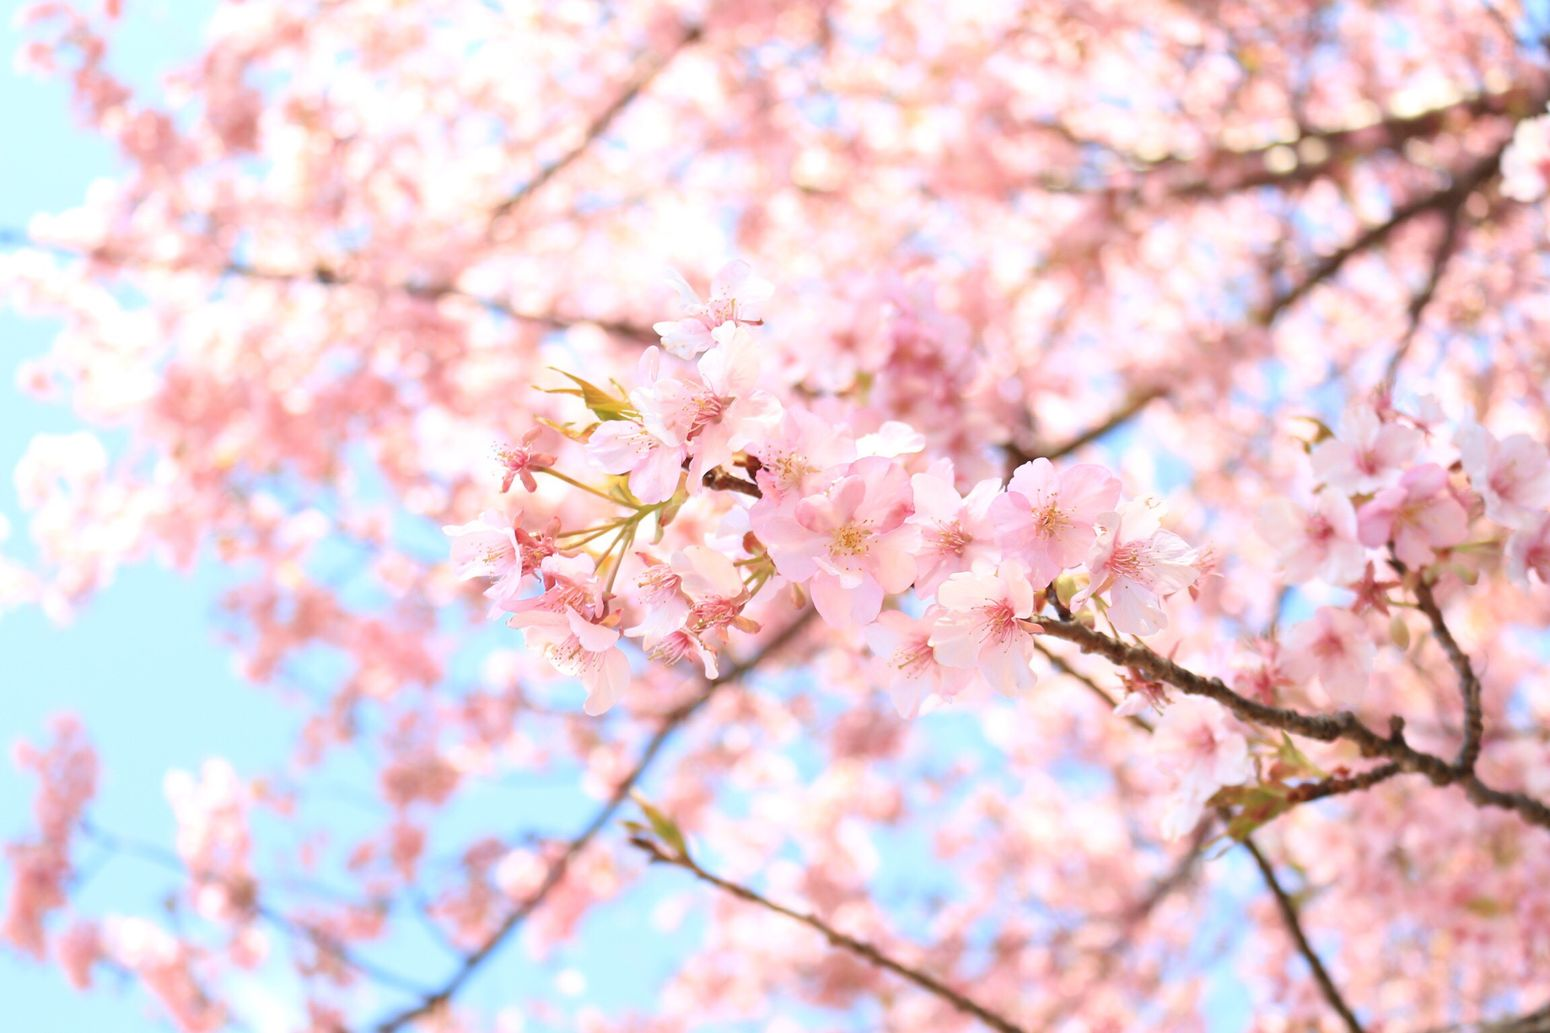 Loveさくら祭り Flower Springtime Nature Beauty In Nature Blossom Pink Color Cherry Blossom 河津桜 桜 せっかく咲き始めたのにアメ…